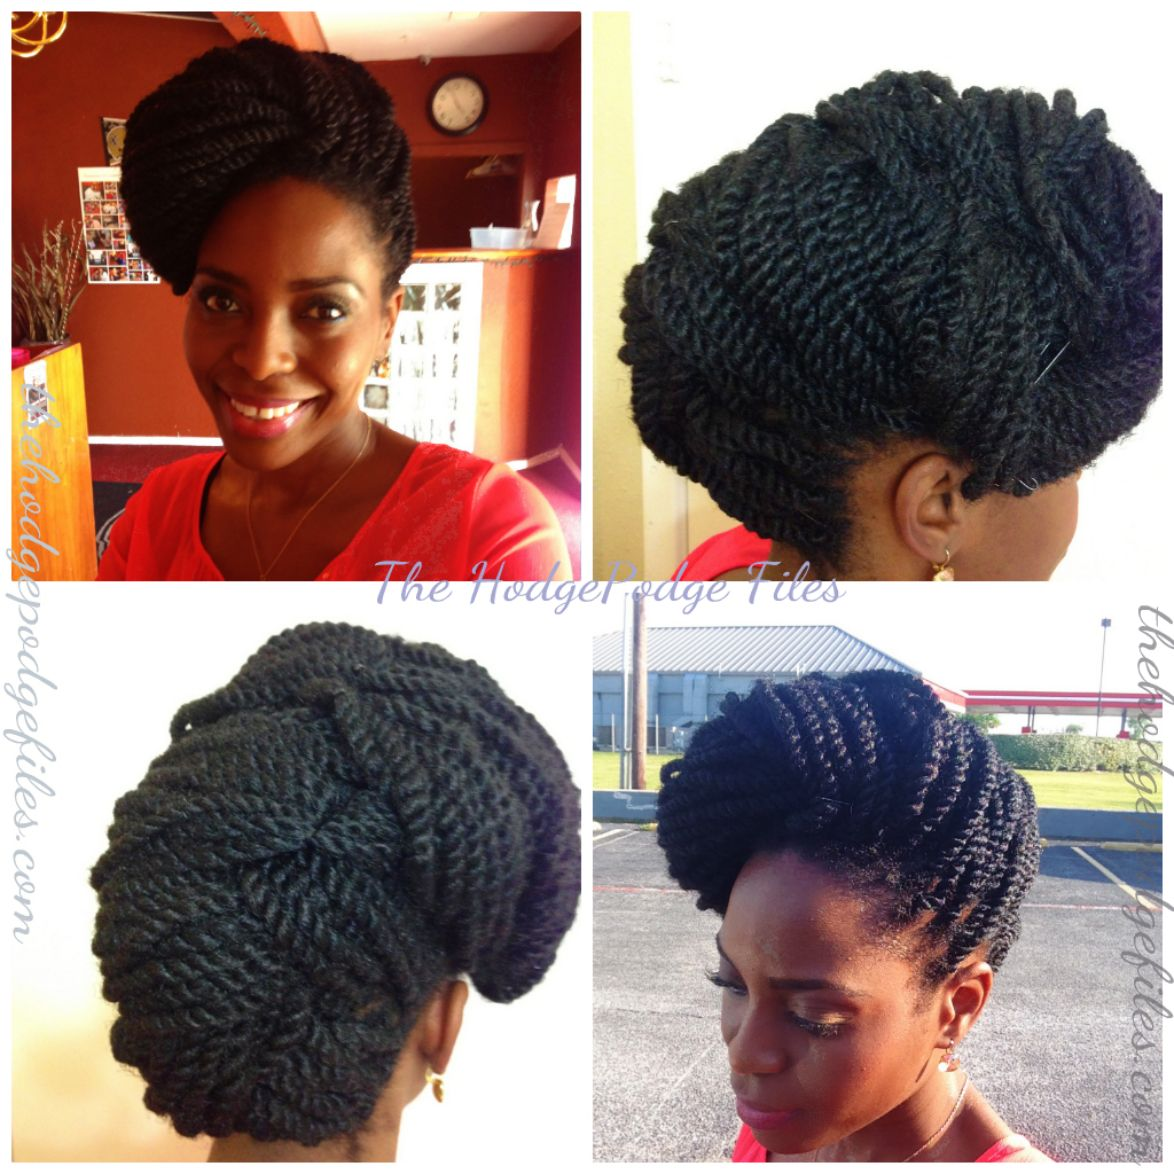 twist hairstyles |  hodgepodge files| a natural hair +